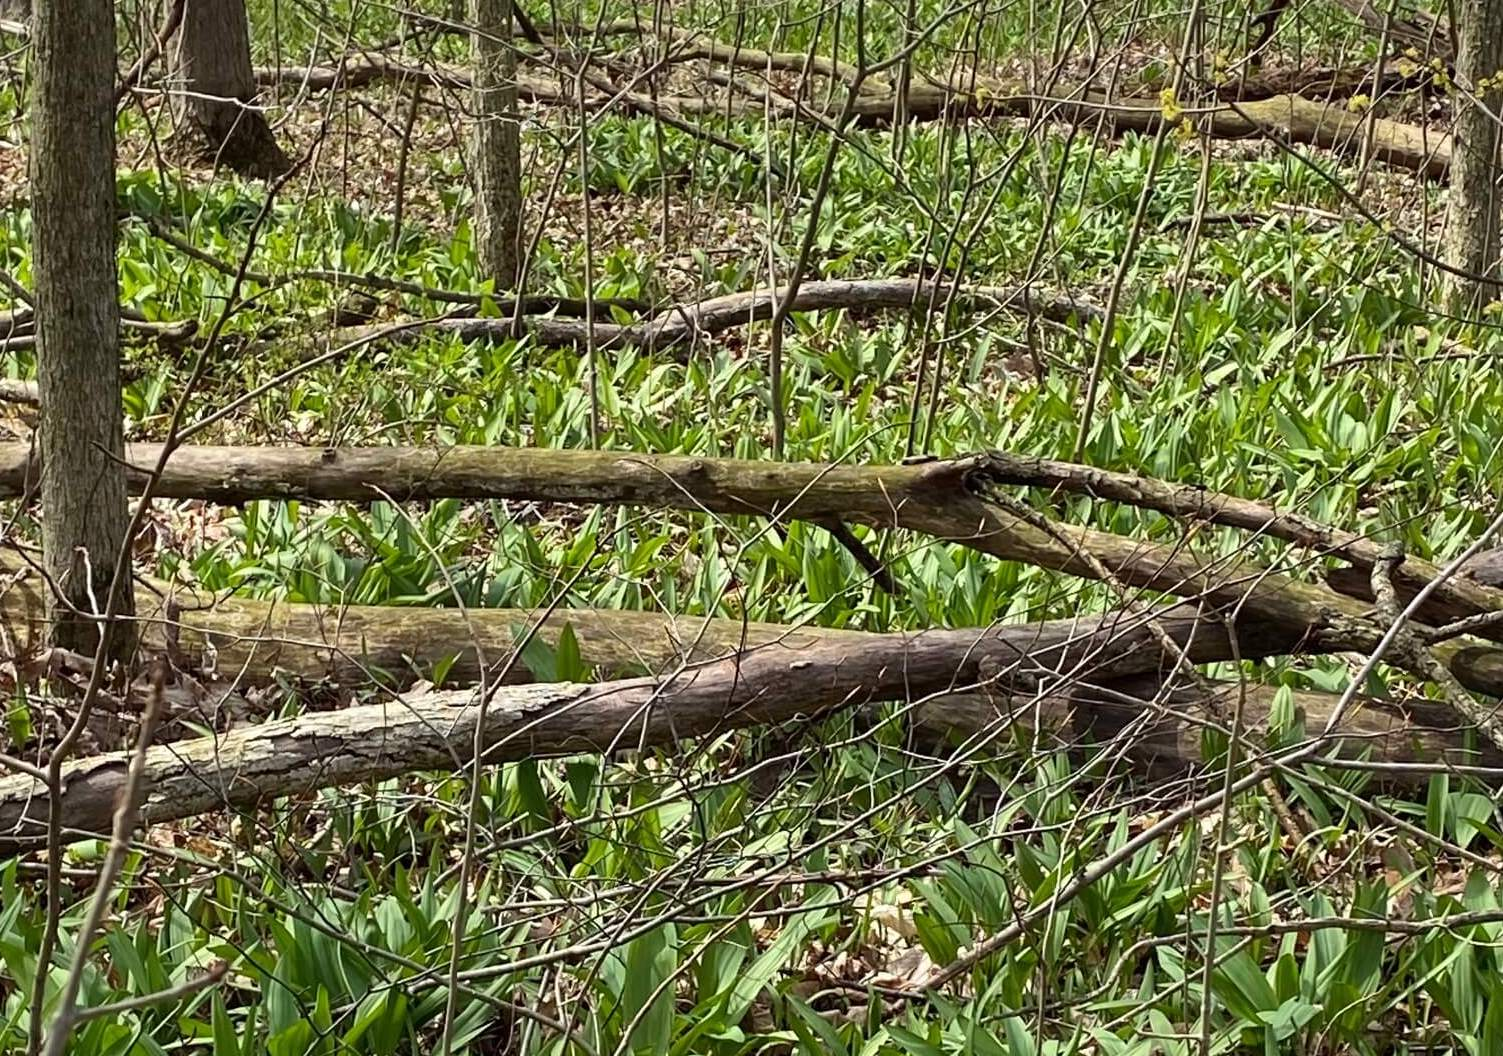 Ramps, or wild onions, growing on the Castle grounds in the woods